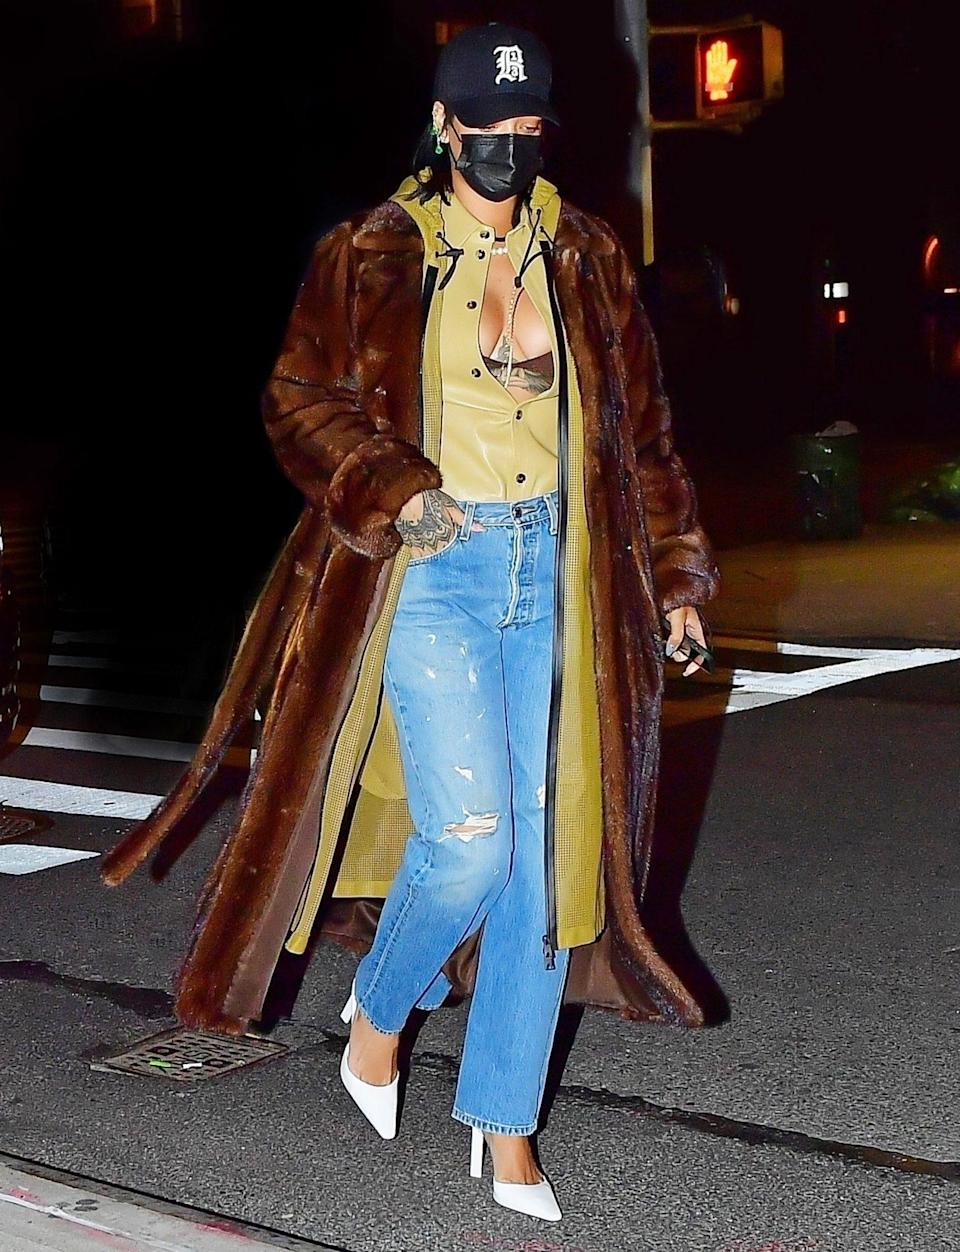 <p>Rihanna shows off her supercool street style while en route to dinner with boyfriend A$AP Rocky and friends (not pictured) in New York City on Wednesday night.</p>